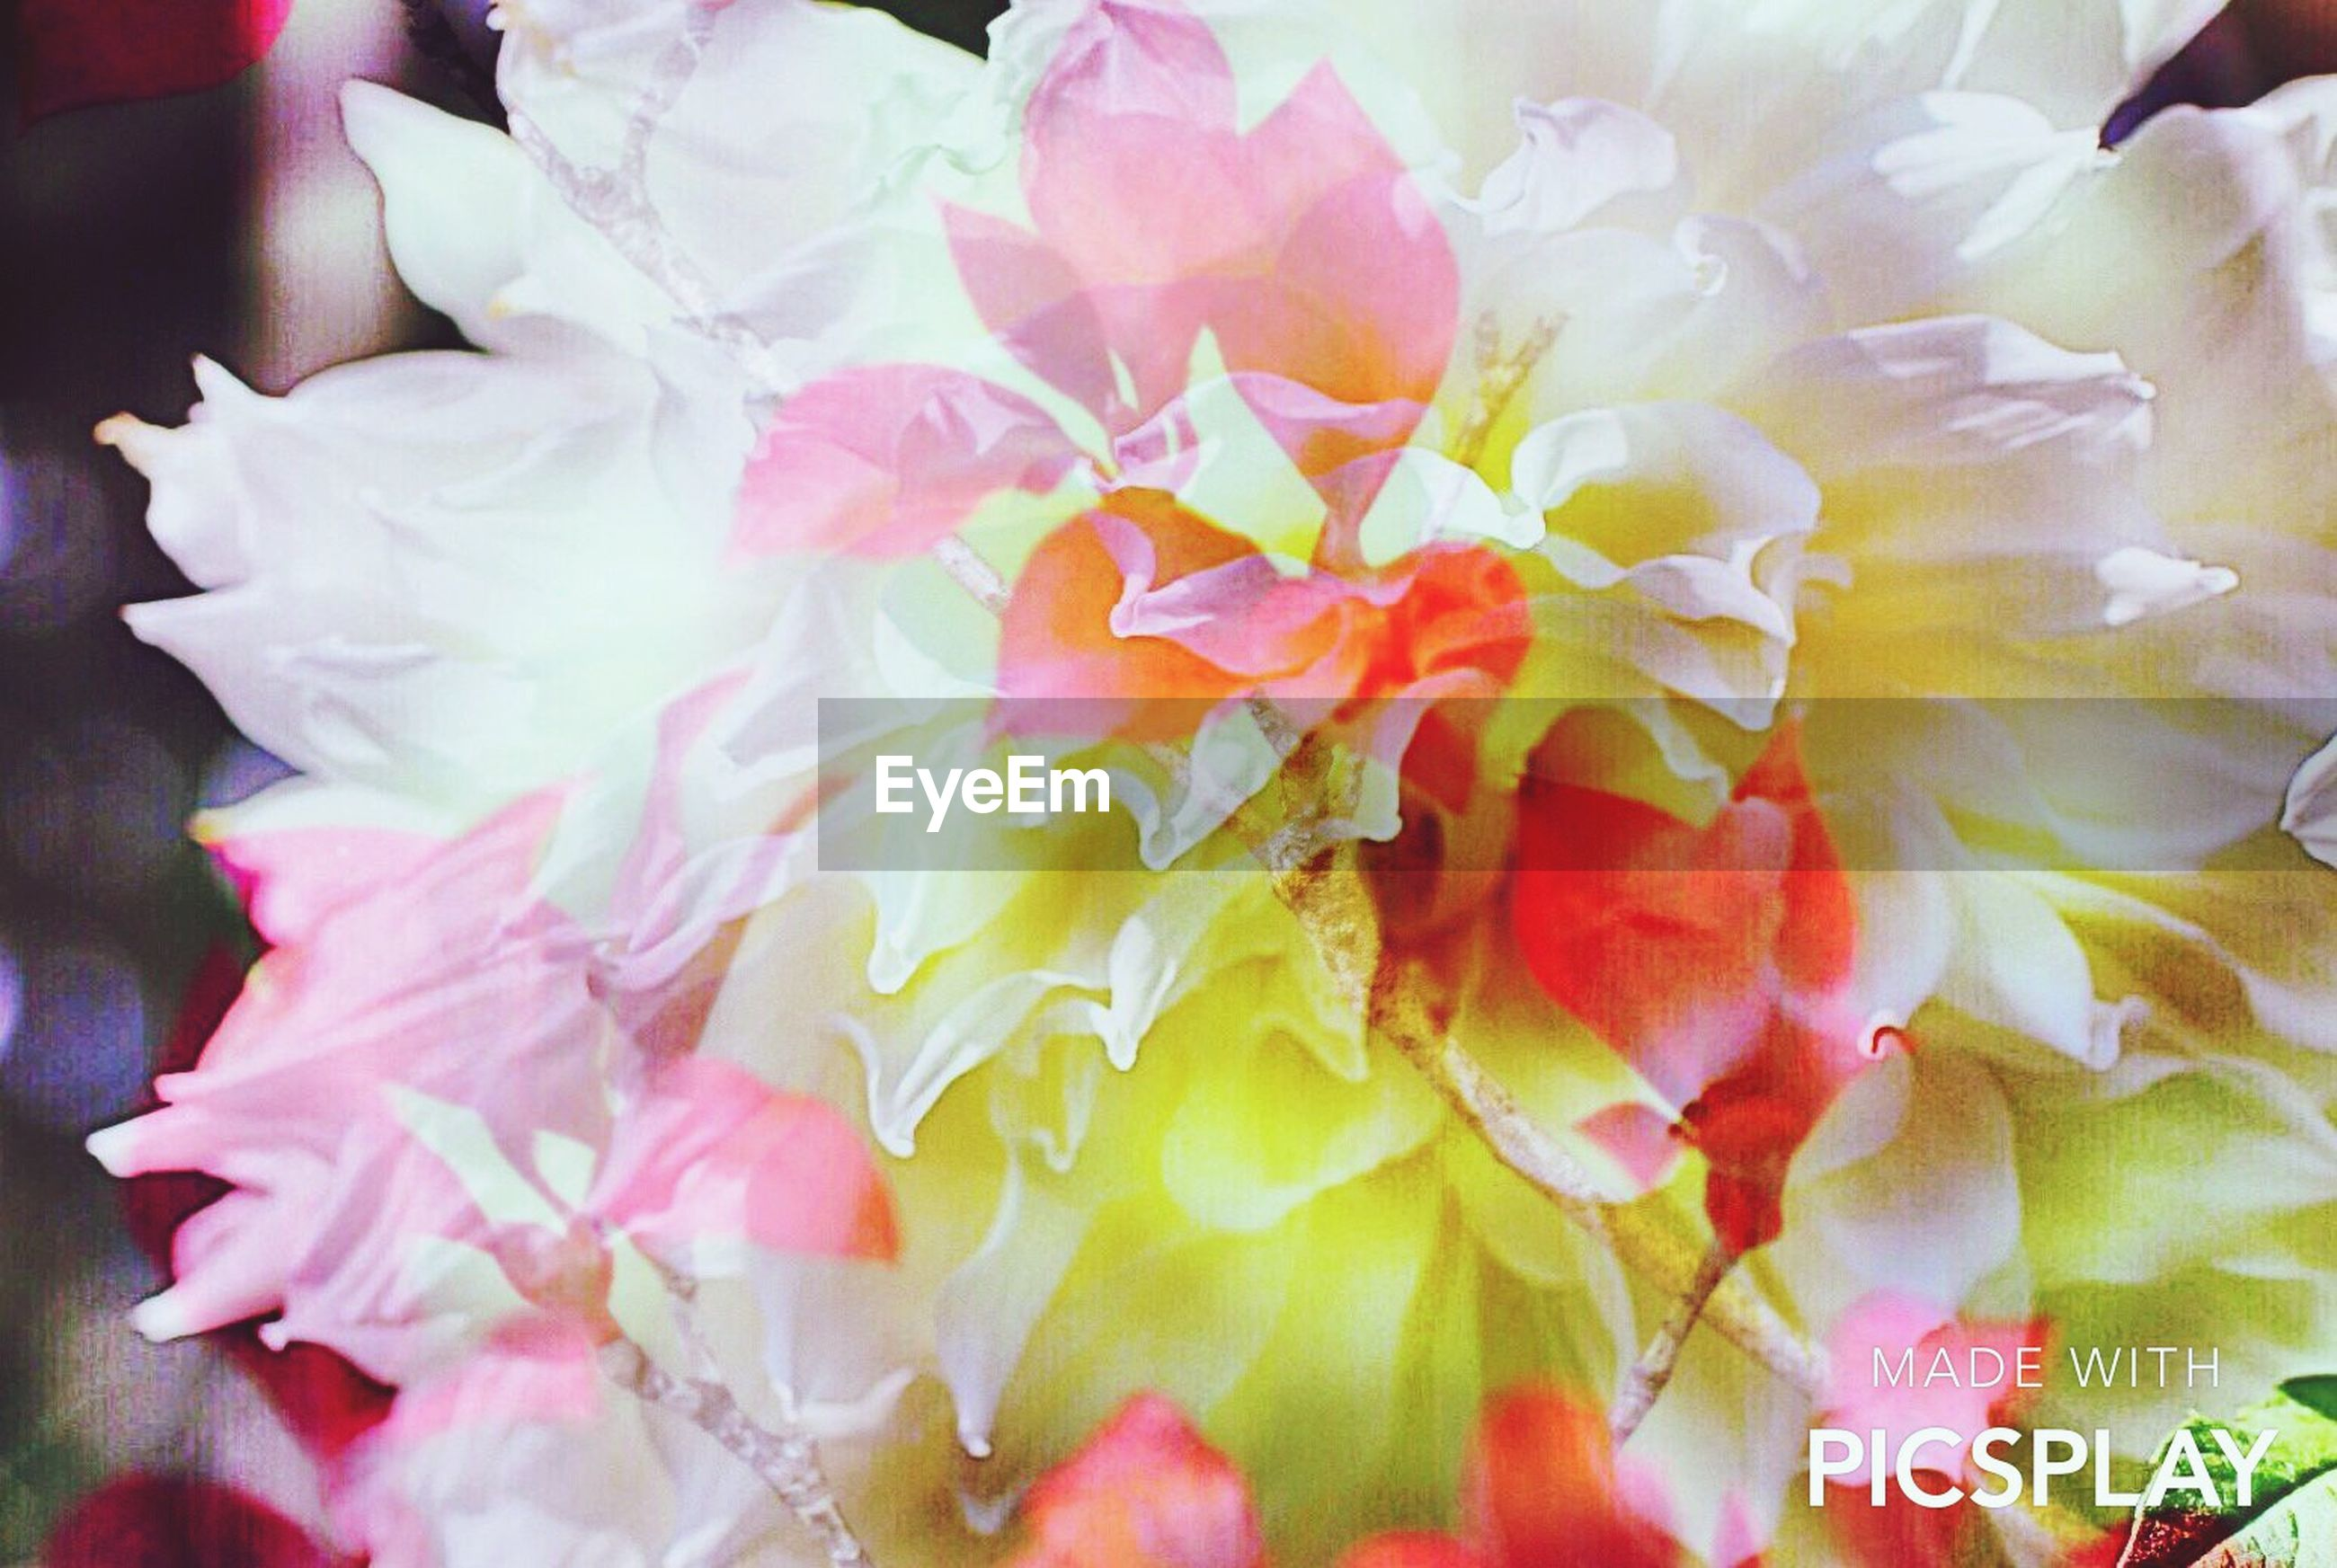 flower, petal, freshness, indoors, flower head, fragility, close-up, beauty in nature, full frame, pink color, rose - flower, high angle view, backgrounds, nature, no people, white color, bouquet, growth, blooming, decoration